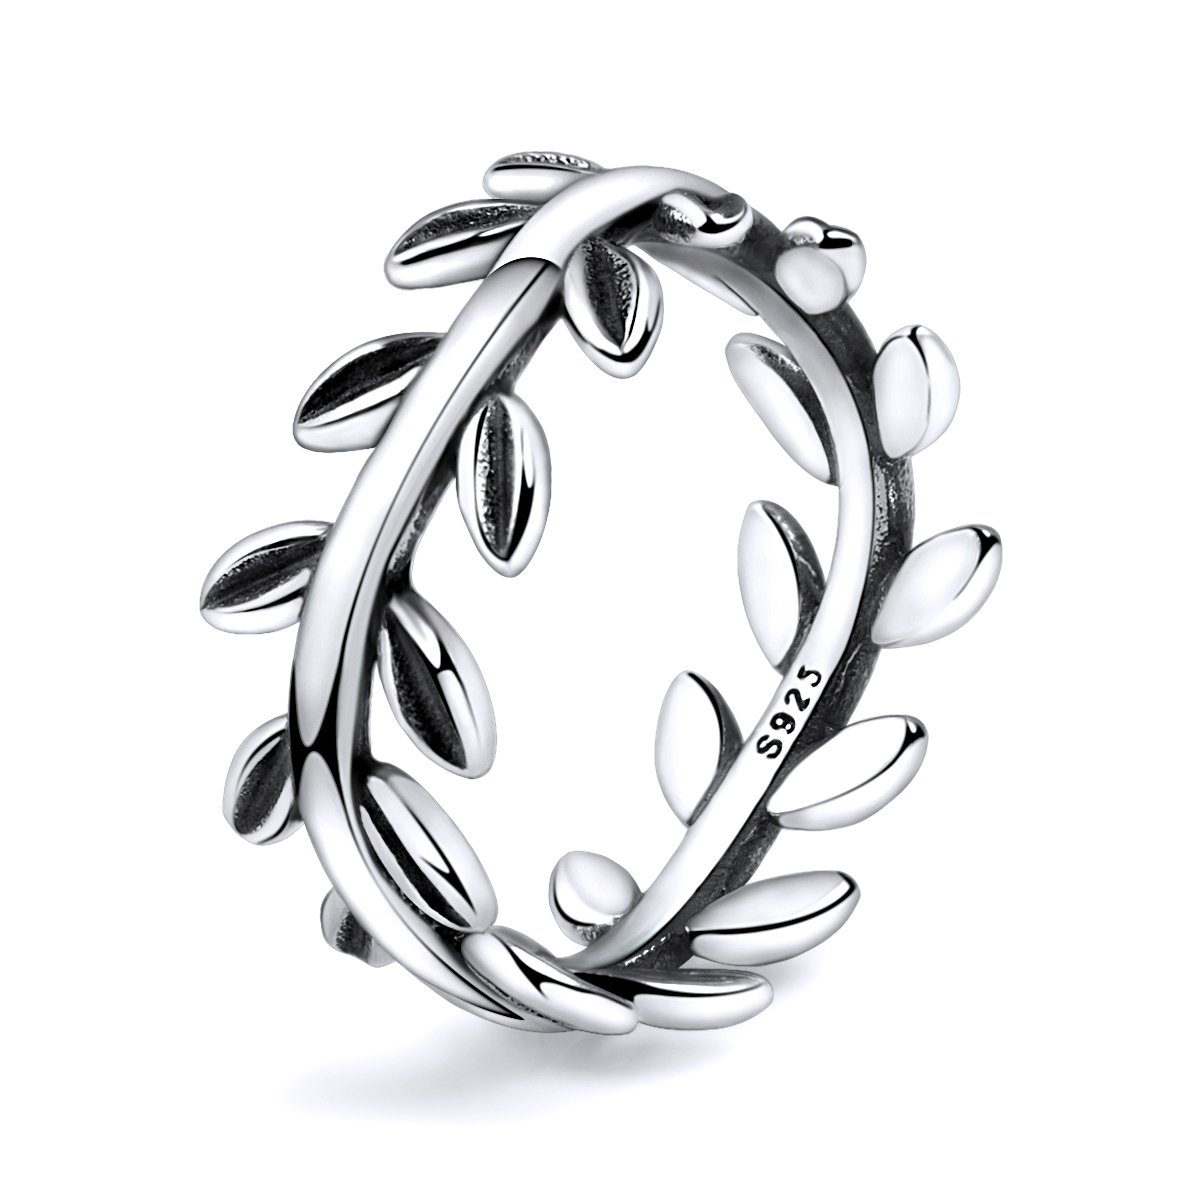 Twenty Plus Simple Sterling Silver Laurel Wreath Finger Ring Gifts For Women & Girls